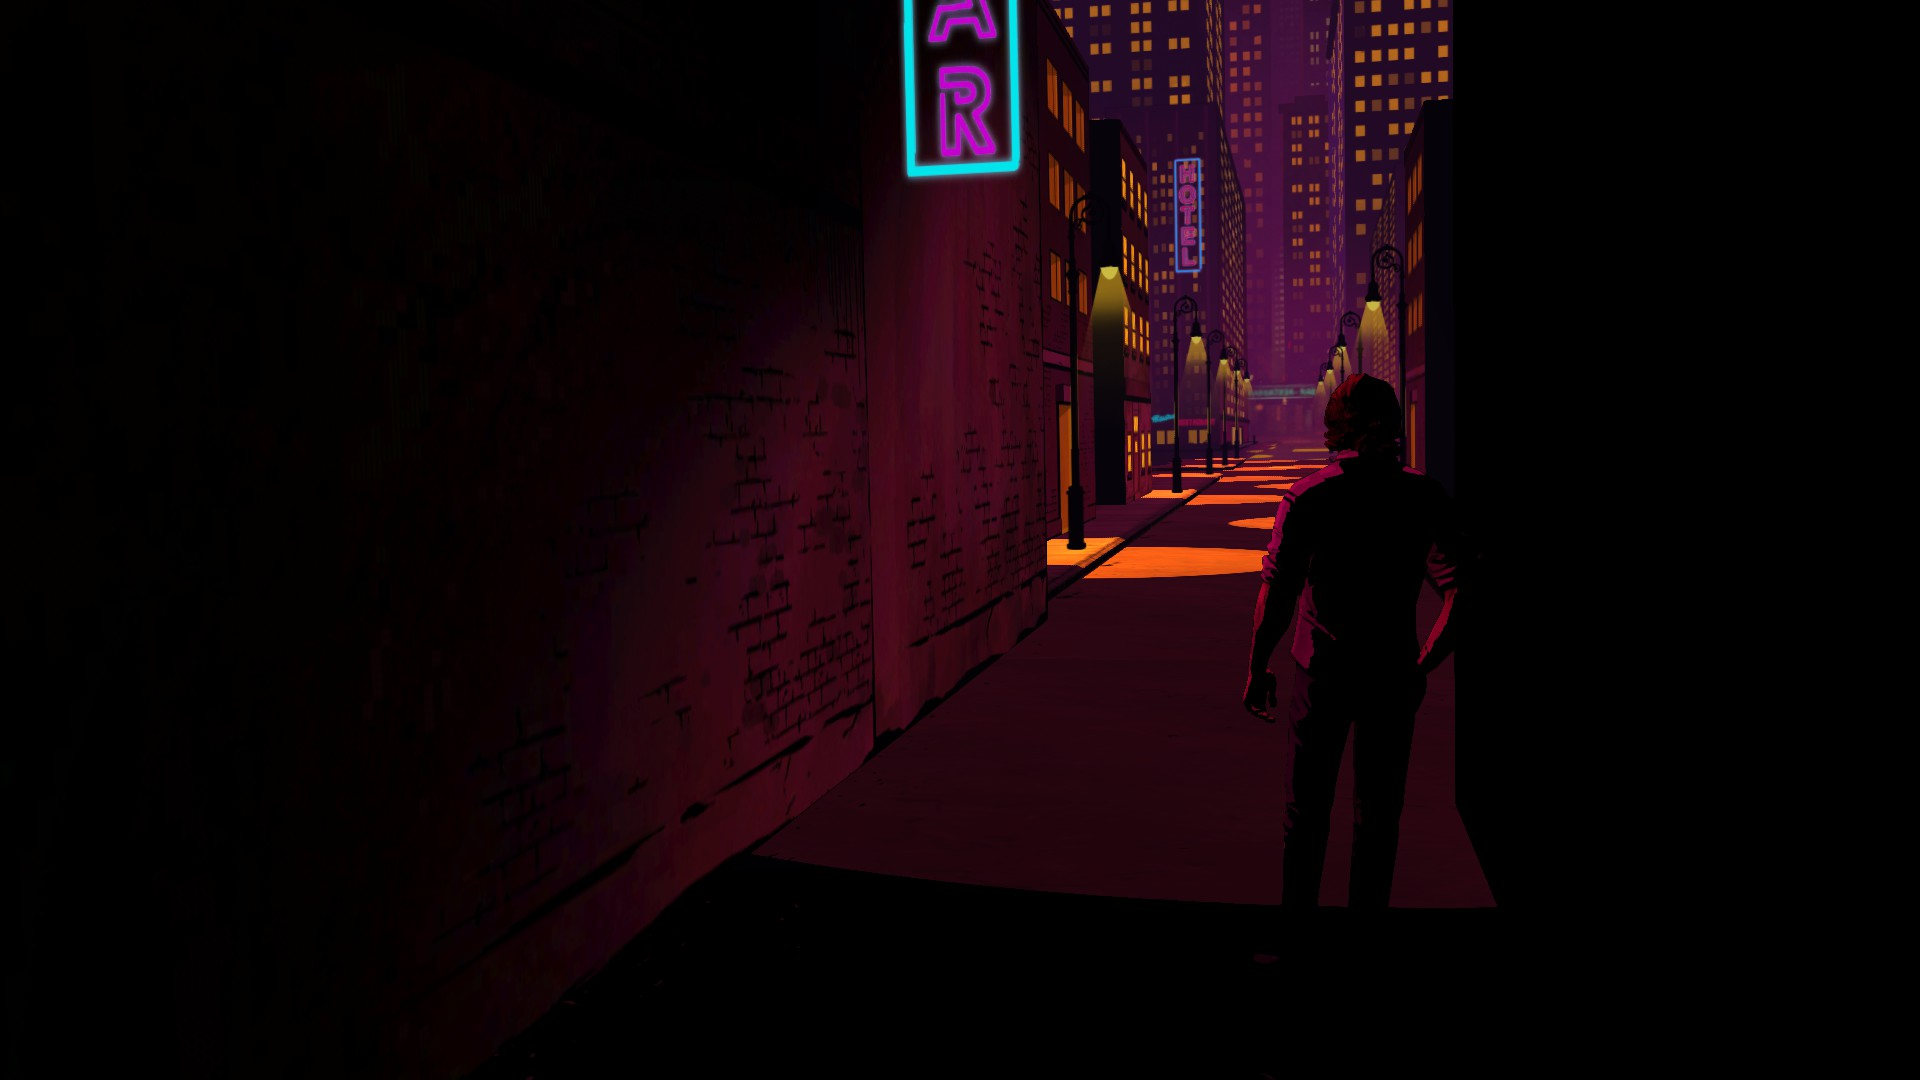 THE WOLF AMONG US game dark city building t wallpaper background 1920x1080